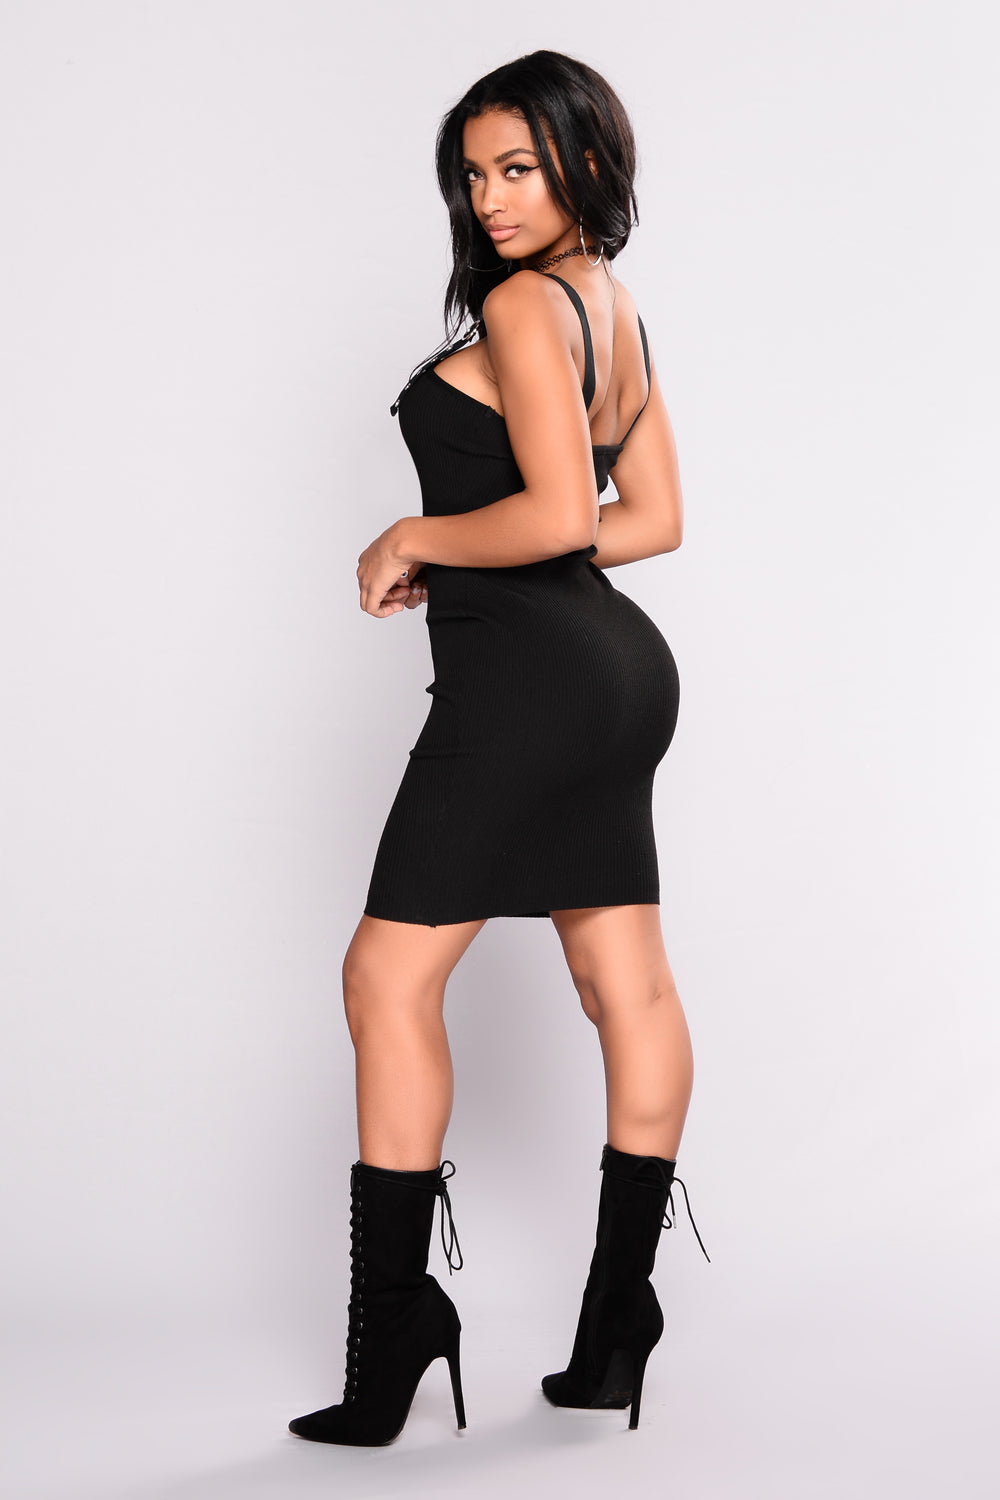 With Some Sass Buckle Dress - Black